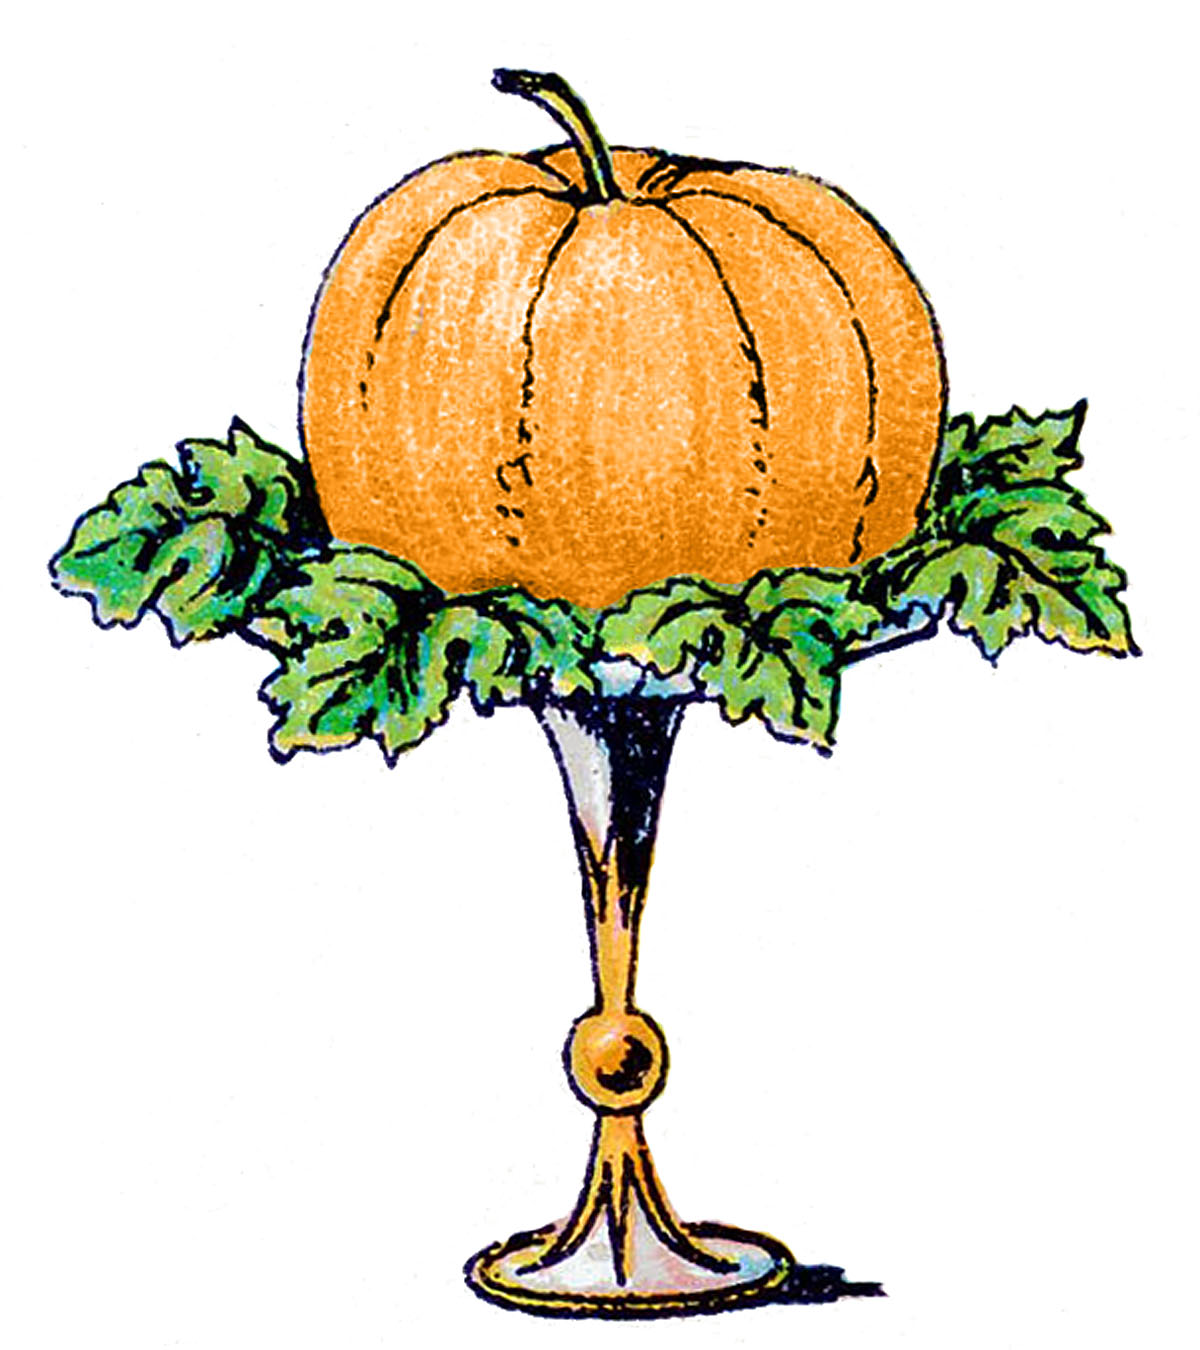 Vintage october clipart graphic transparent library 9 Pumpkin Images -Halloween - Fall! - The Graphics Fairy graphic transparent library